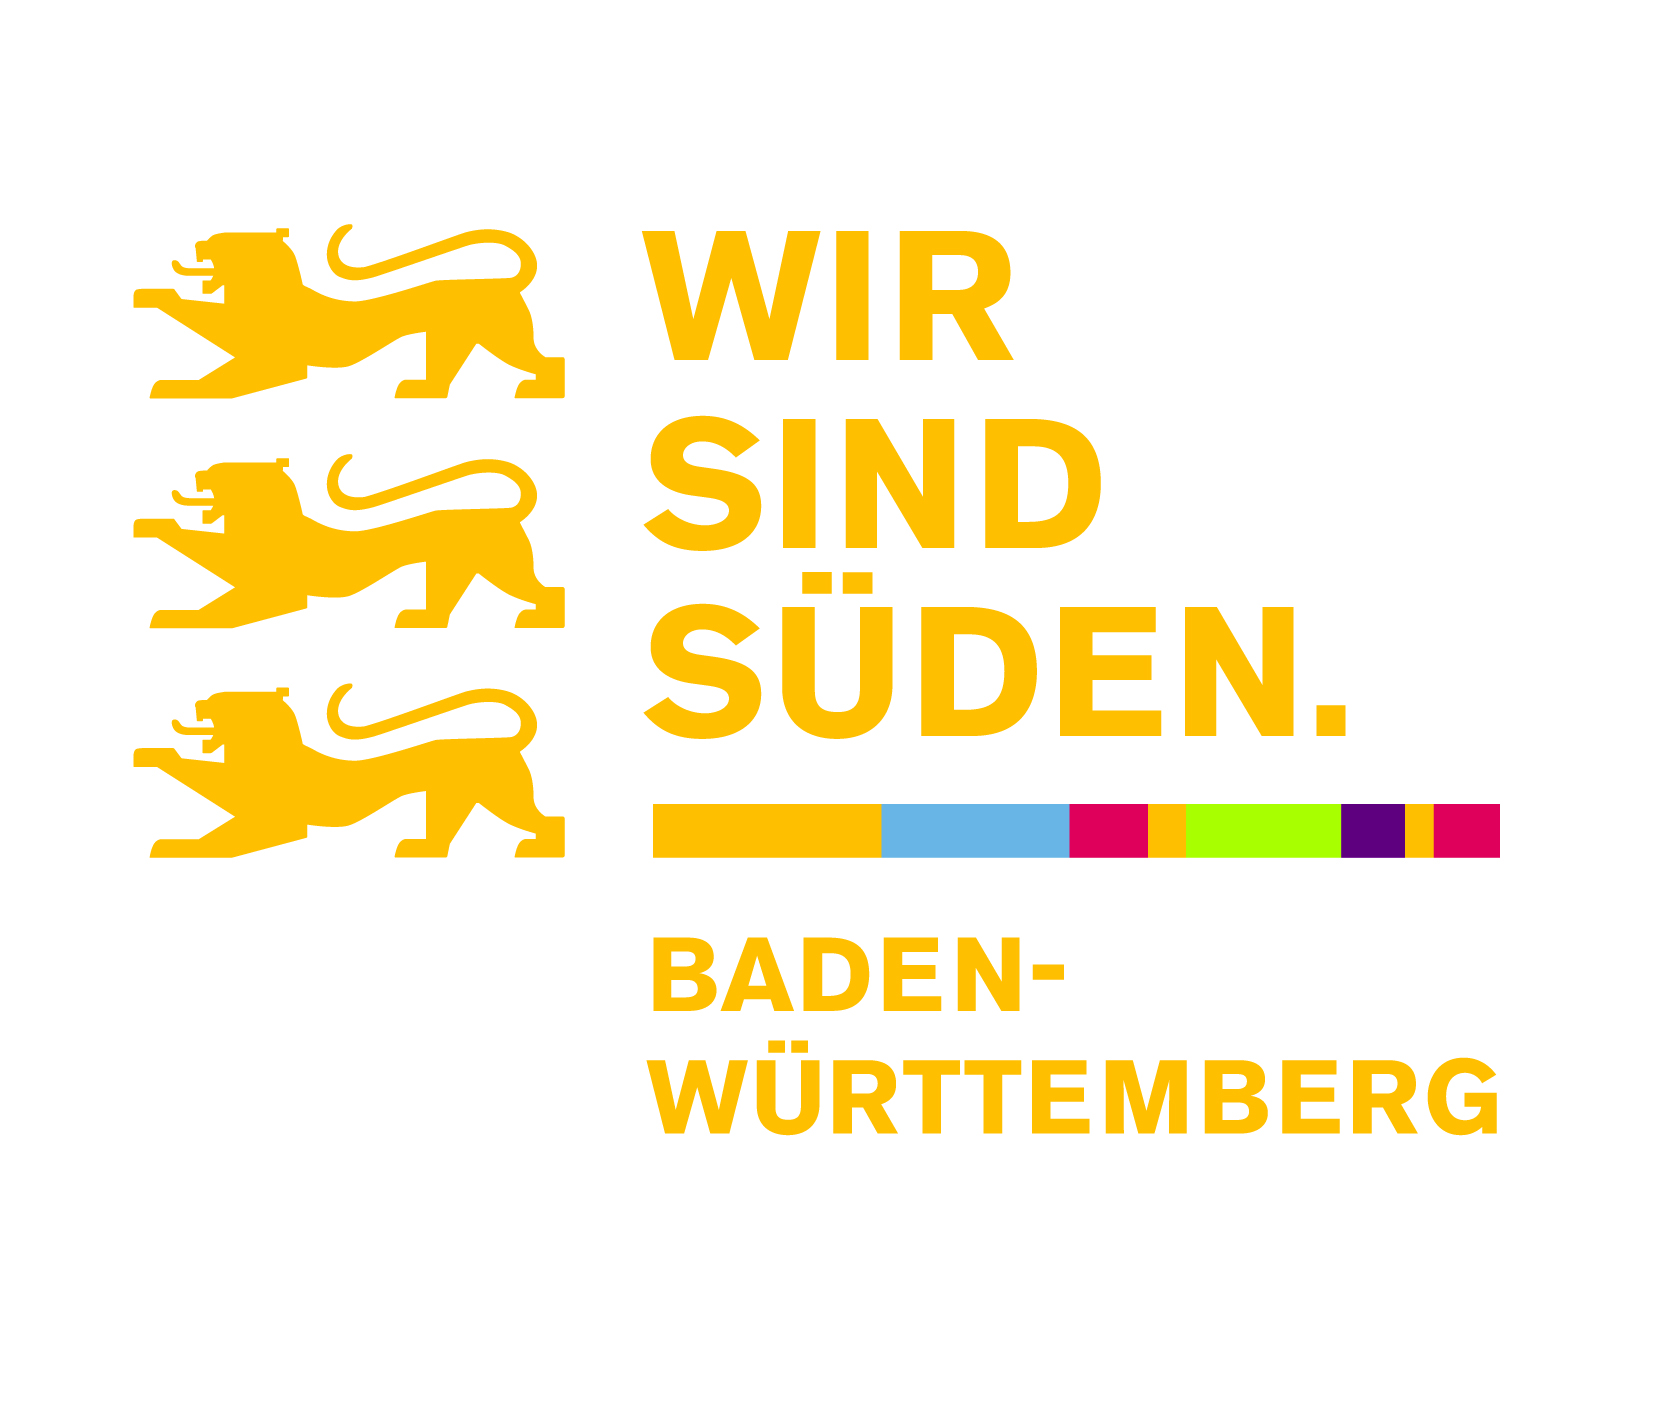 Tourismus Marketing GmbH Baden-Württemberg